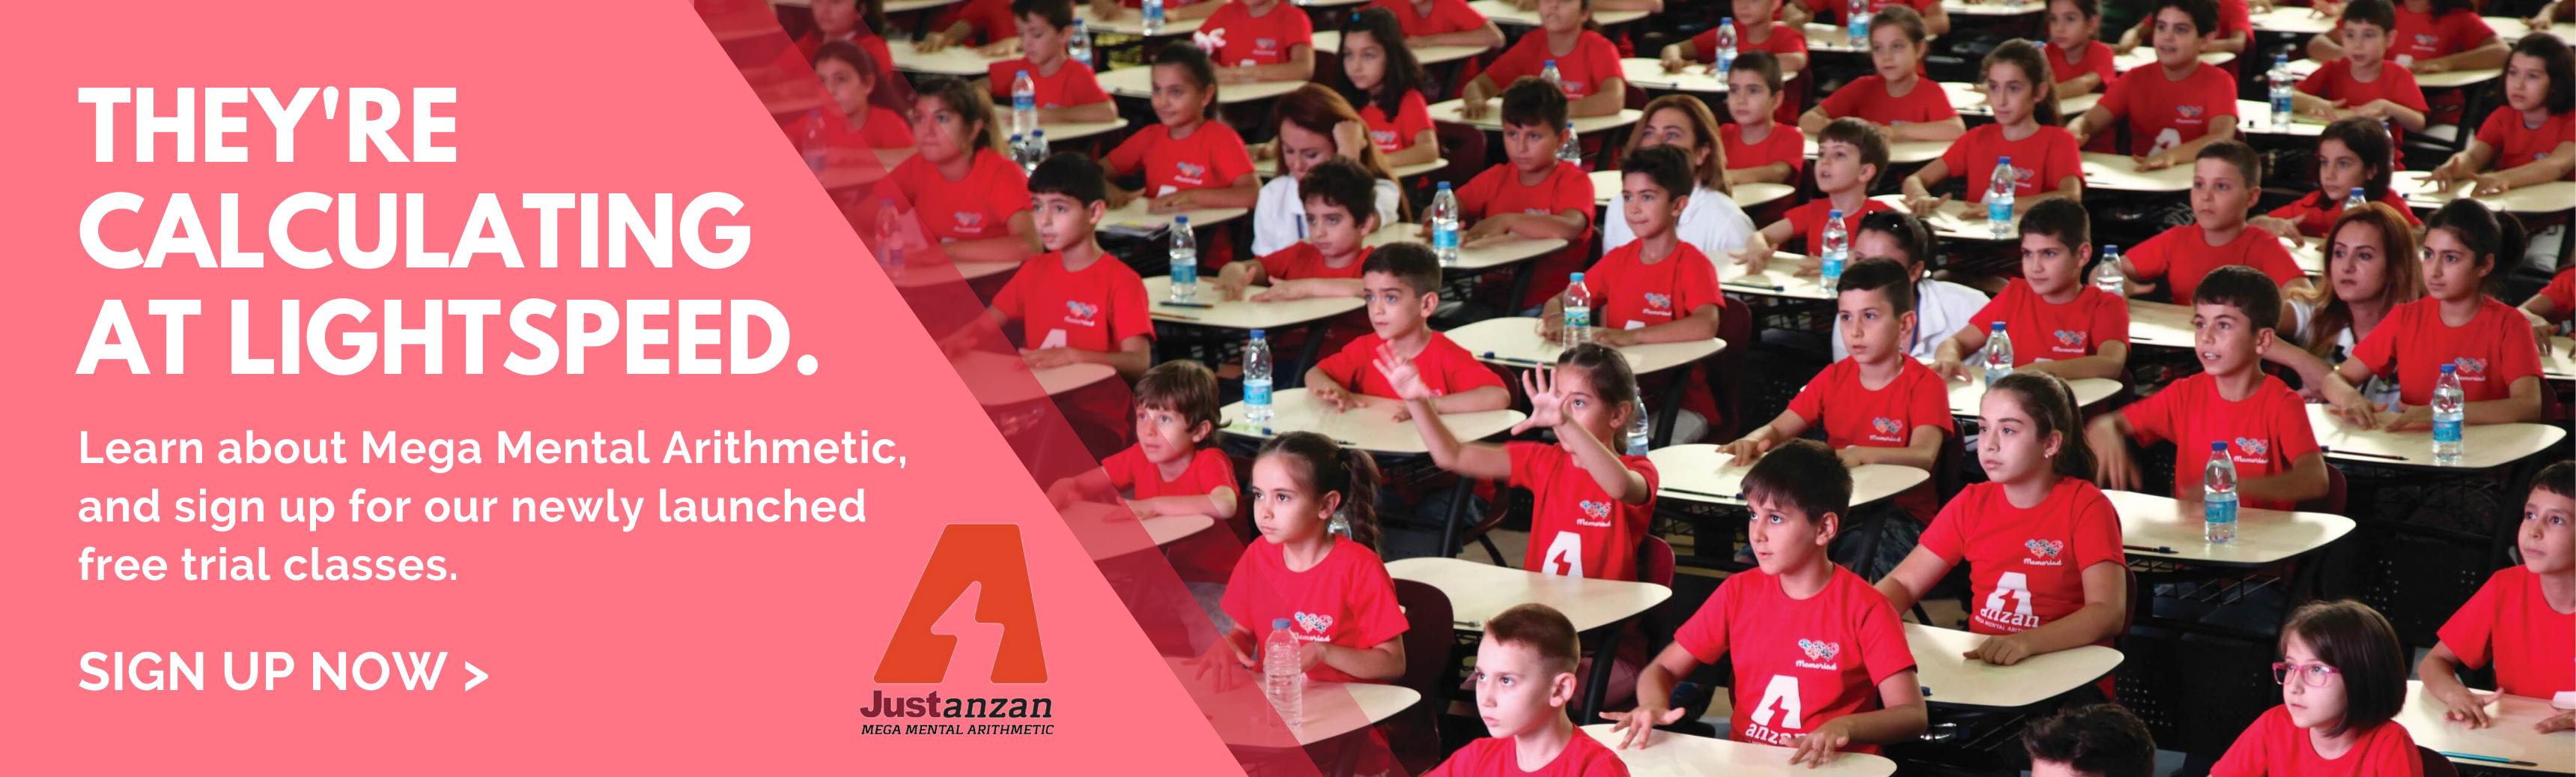 Anzan Free Trial Class 2020 Website Banner With Logo